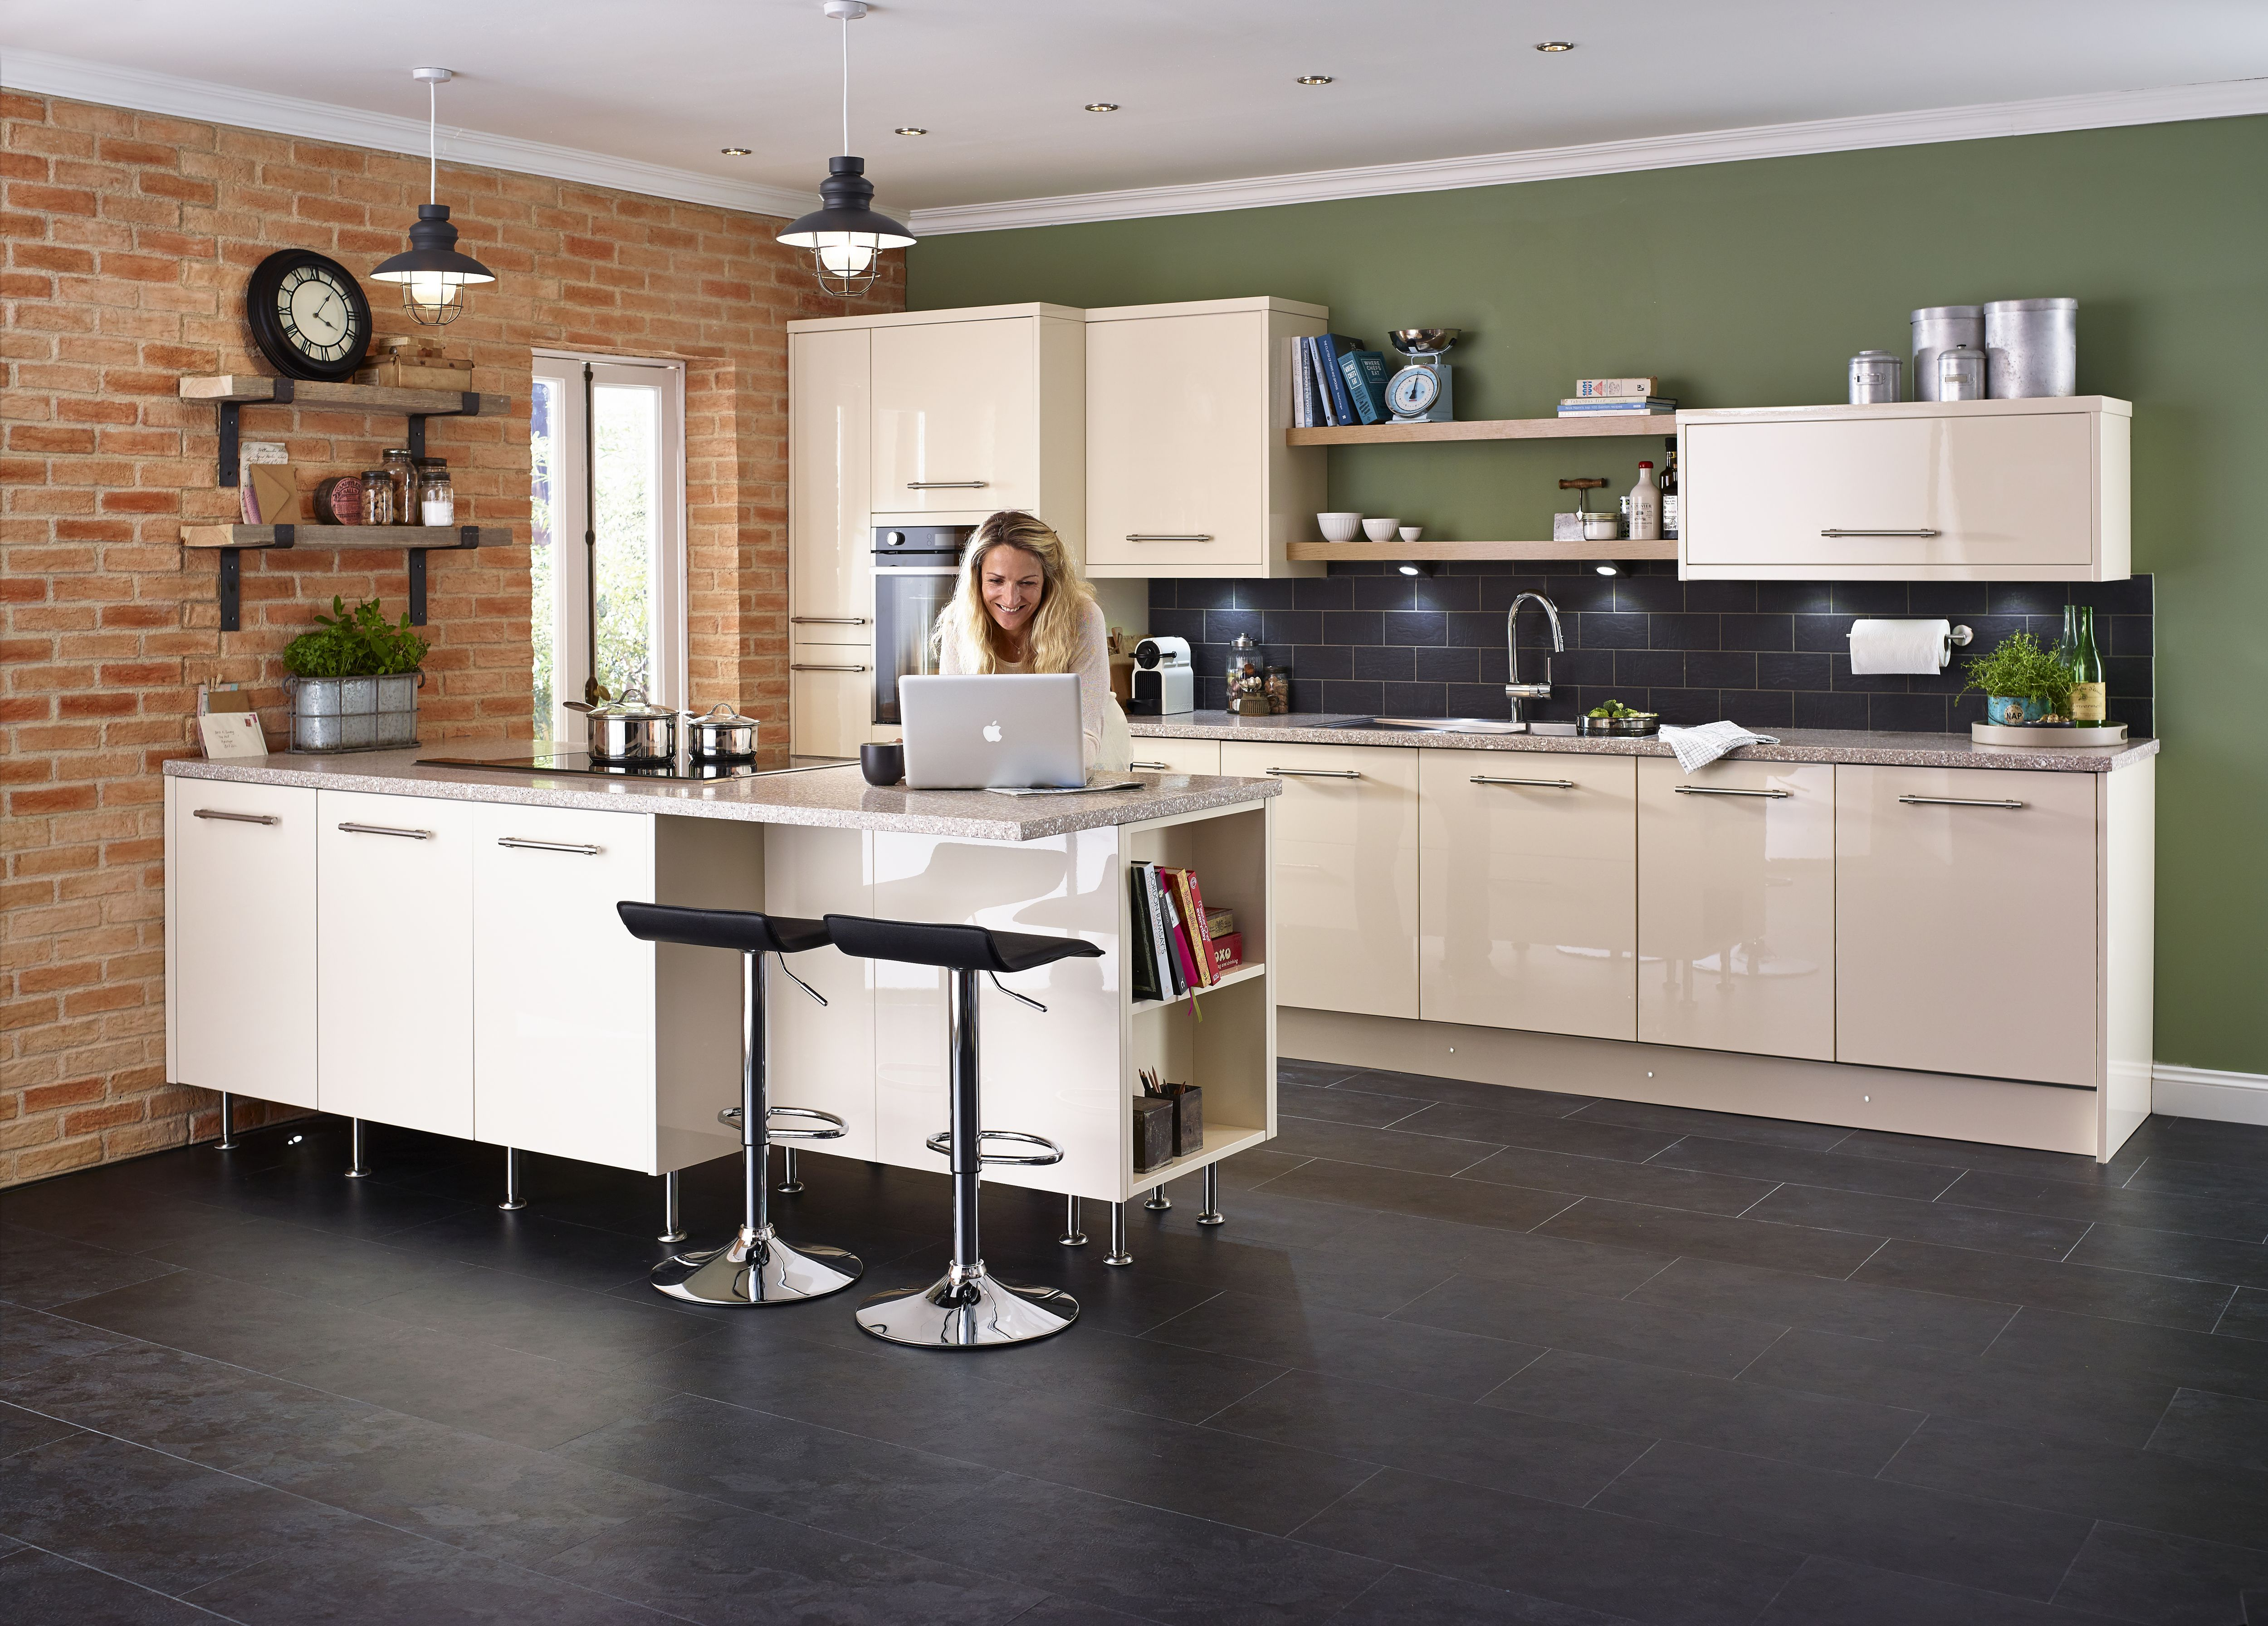 Woman On Laptop In Cooke U0026amp; Lewis Raffello High Gloss Cream Slab Fitted  Kitchen